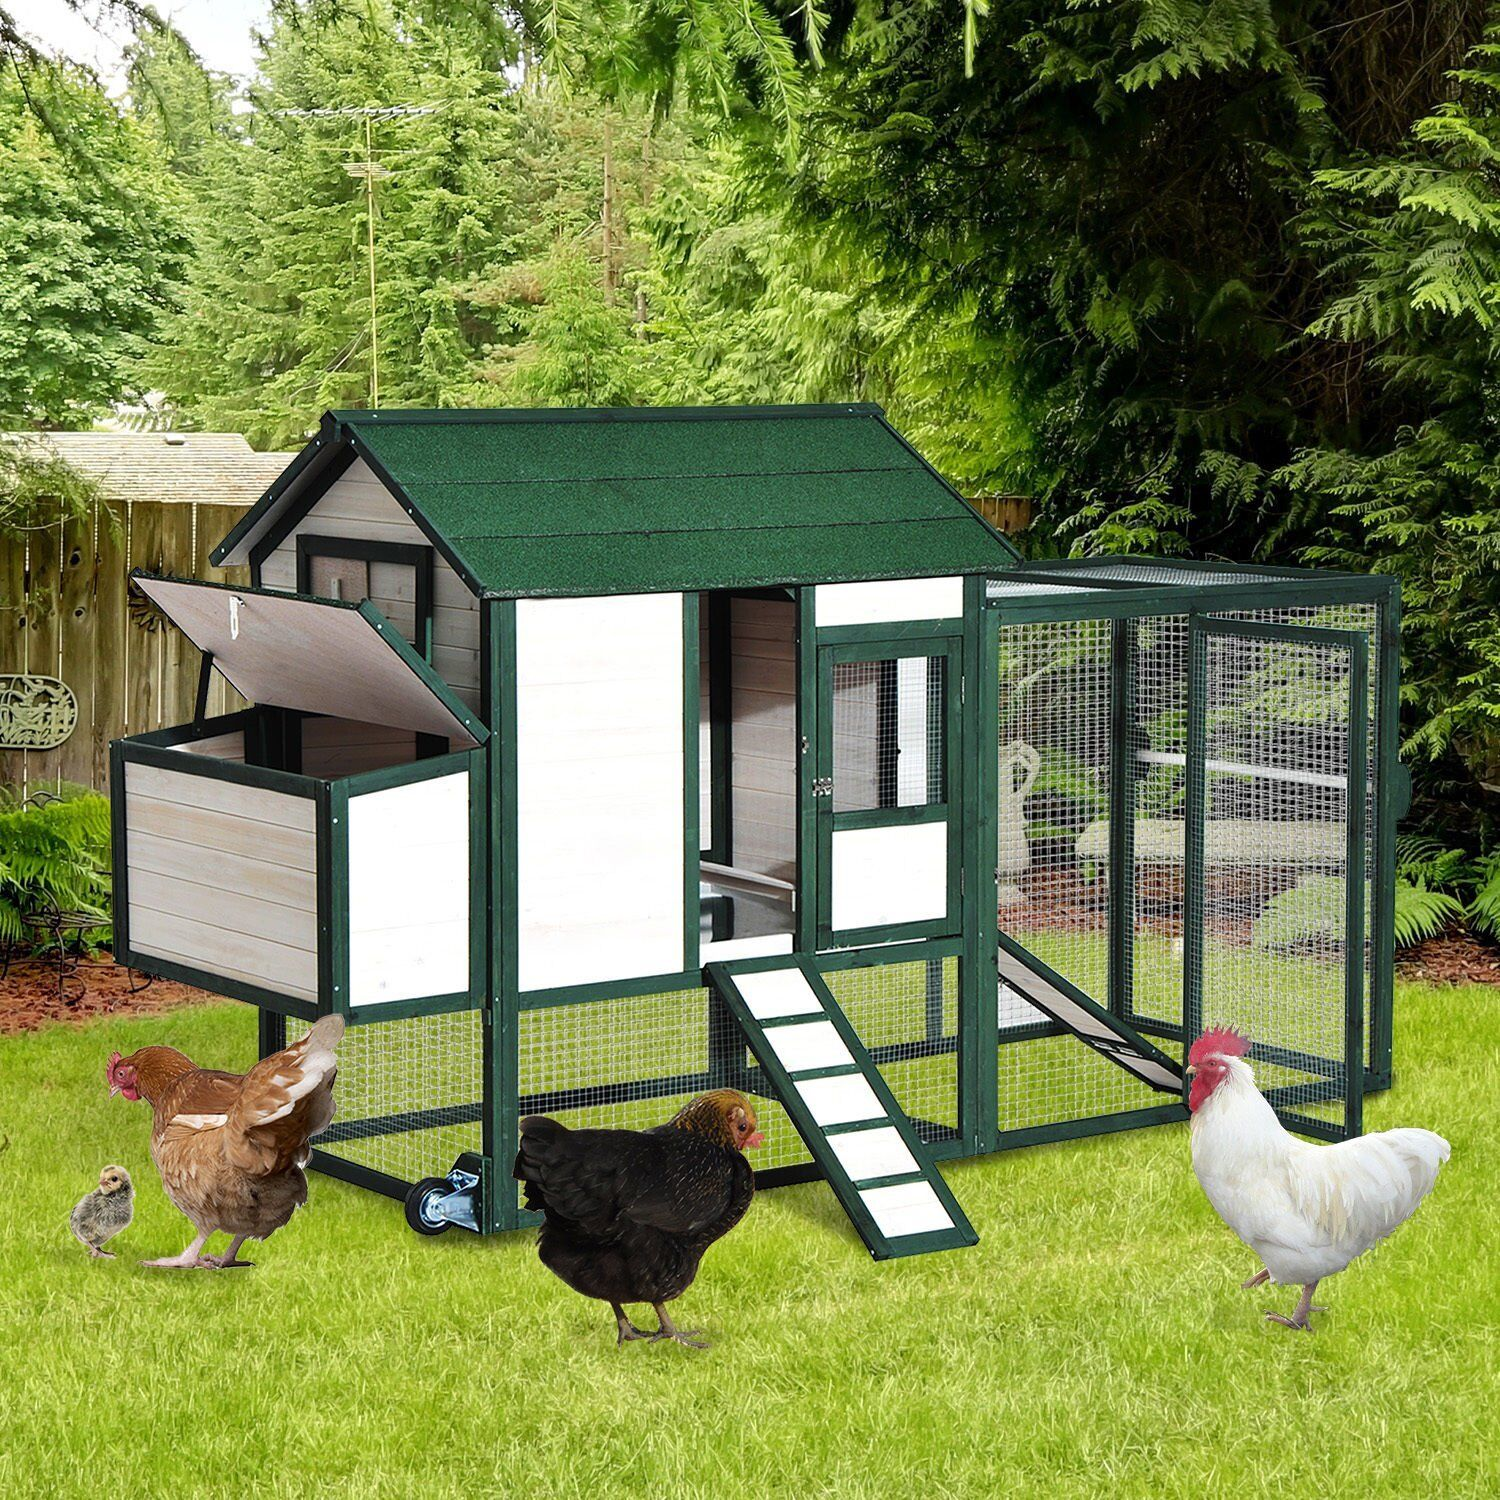 Garlington Portable Wooden Chicken Coop with Wheels Run and Nesting Box